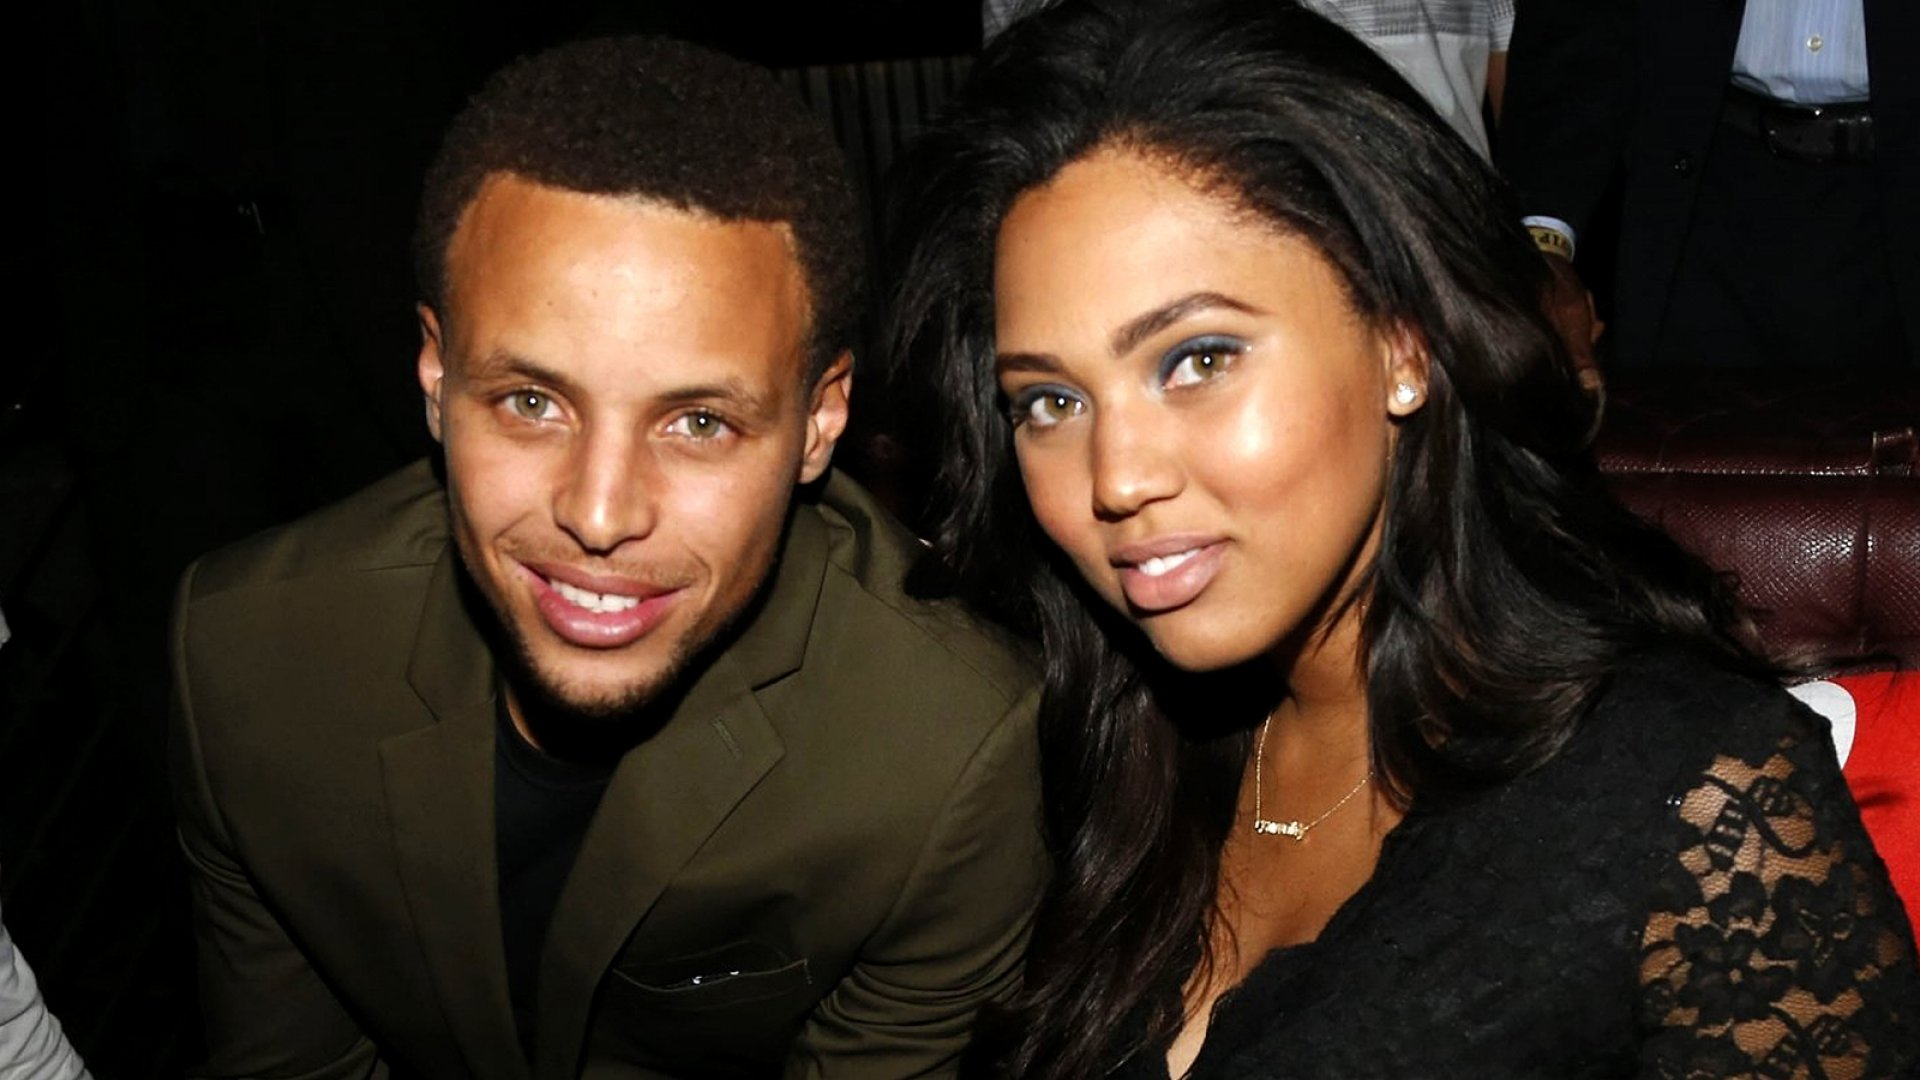 Emotional Intelligence 101: How Steph Currys Wife Lost